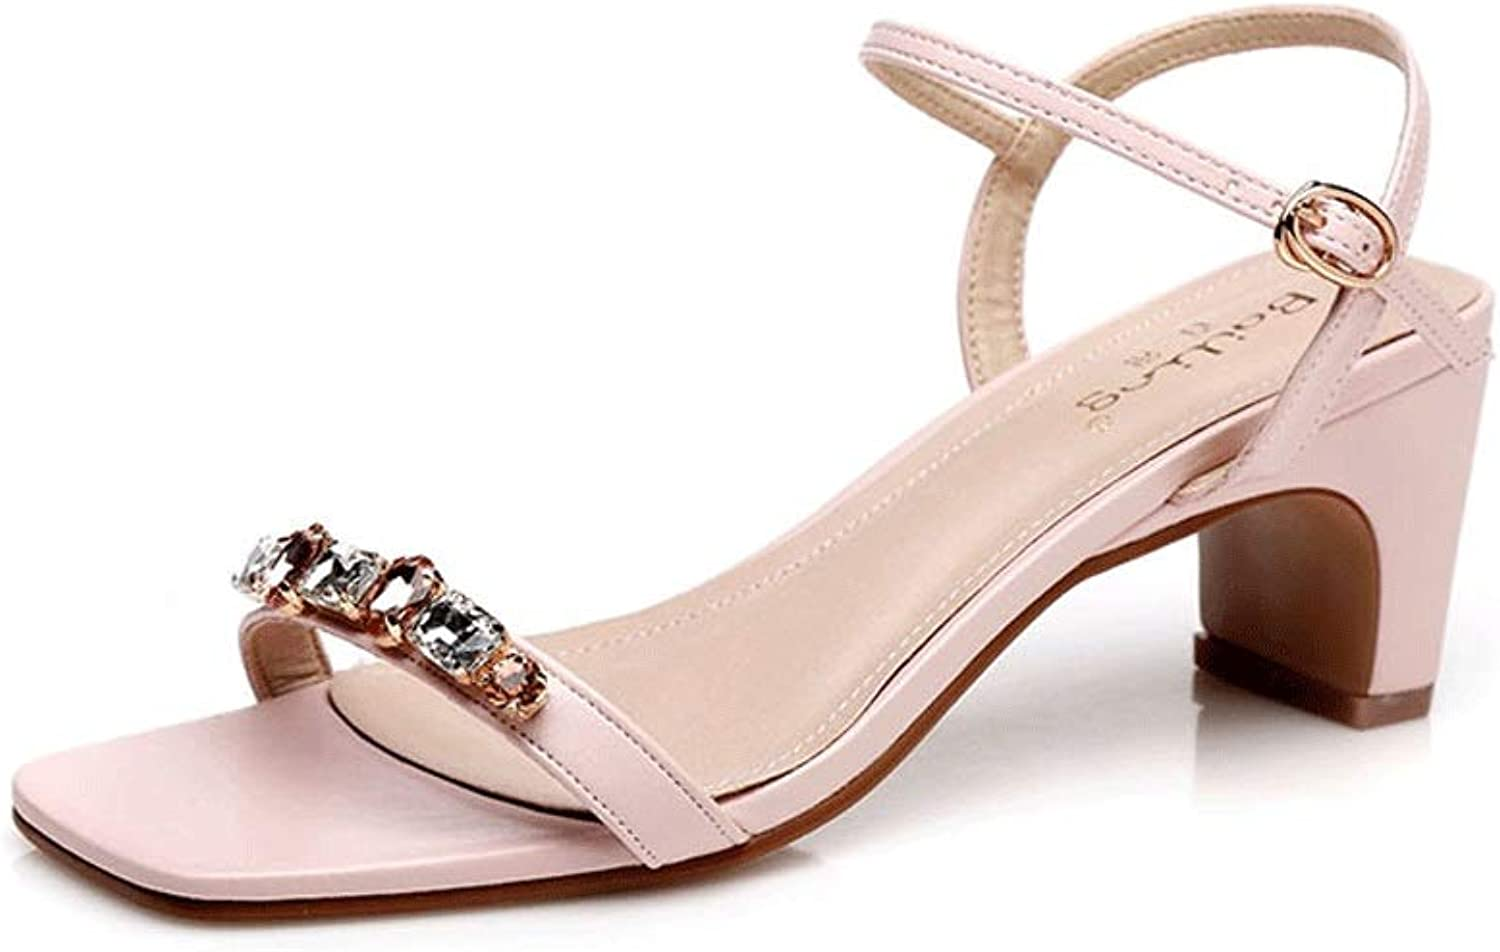 New Women's Sandals Thick with A Buckle with High-Heeled Bent with Small Square Head Small Size Women's shoes with High-Heeled Sandals